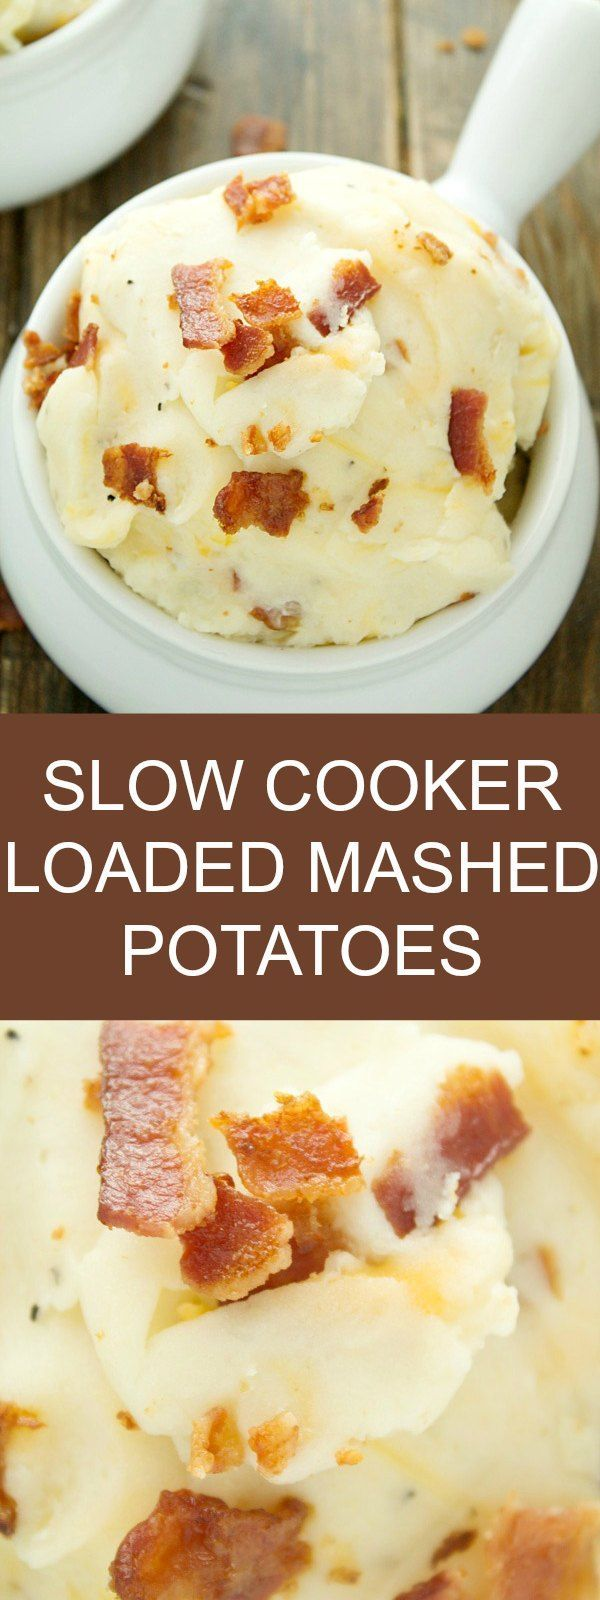 Slow Cooker Loaded Mashed Potatoes - Fluffy mashed potatoes with cream cheese as an easy side dish! Make mashed potatoes in crockpot and get on with the rest of your day. Come home at night to these oh so delicious mashed potatoes with sour cream. It's one of the best mashed potato recipes out there!